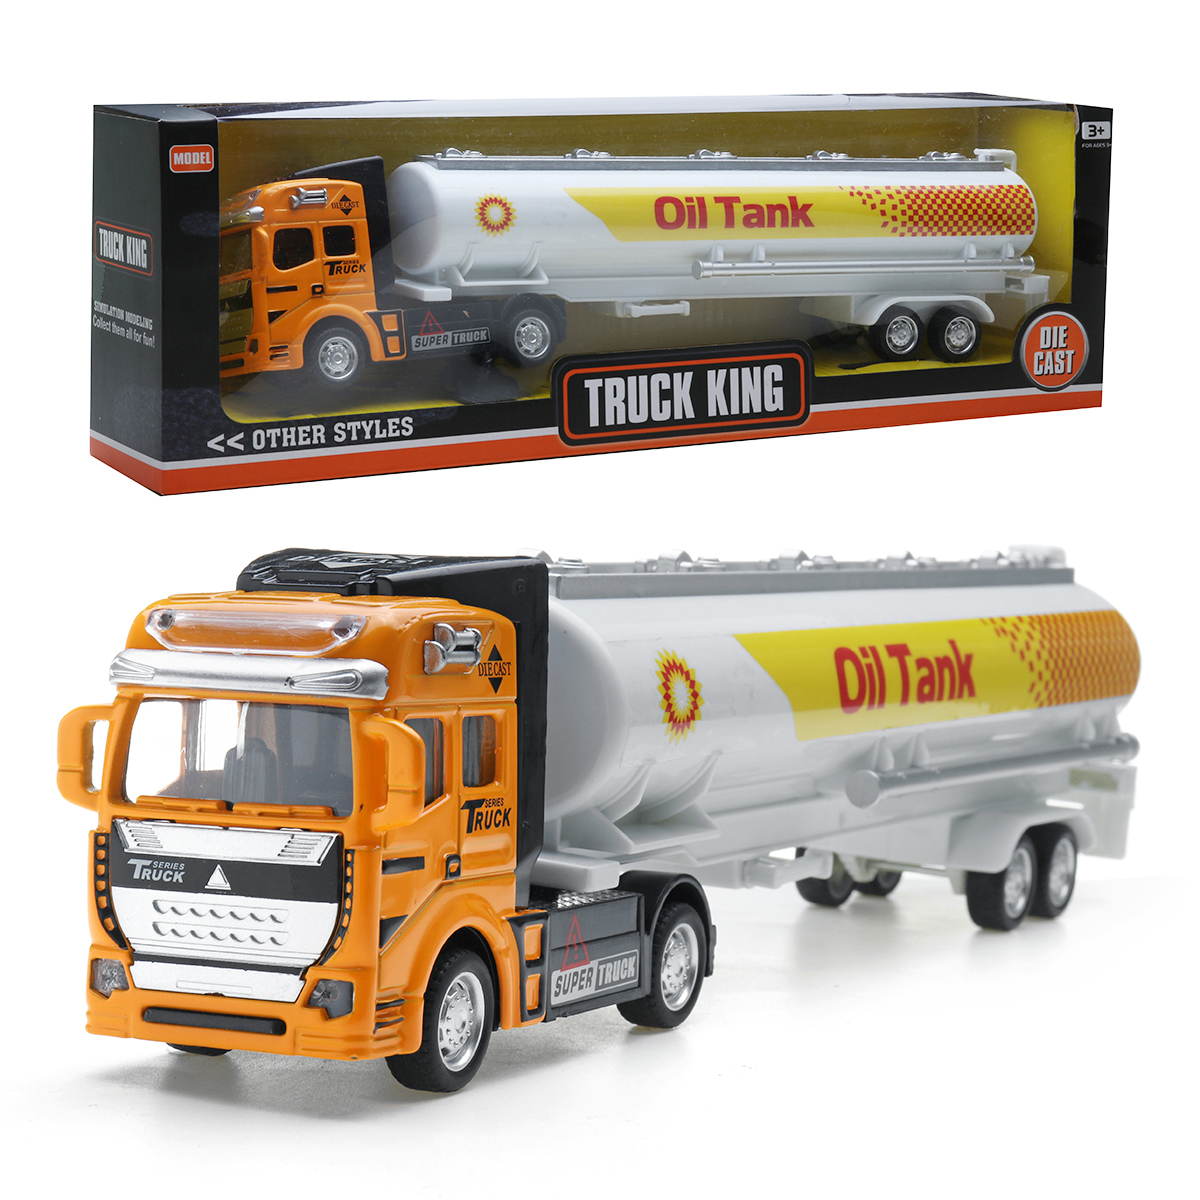 1:48 Alloy Pull Back Oil Tank Container Truck Diecast Car Model Toy for Kids Gift